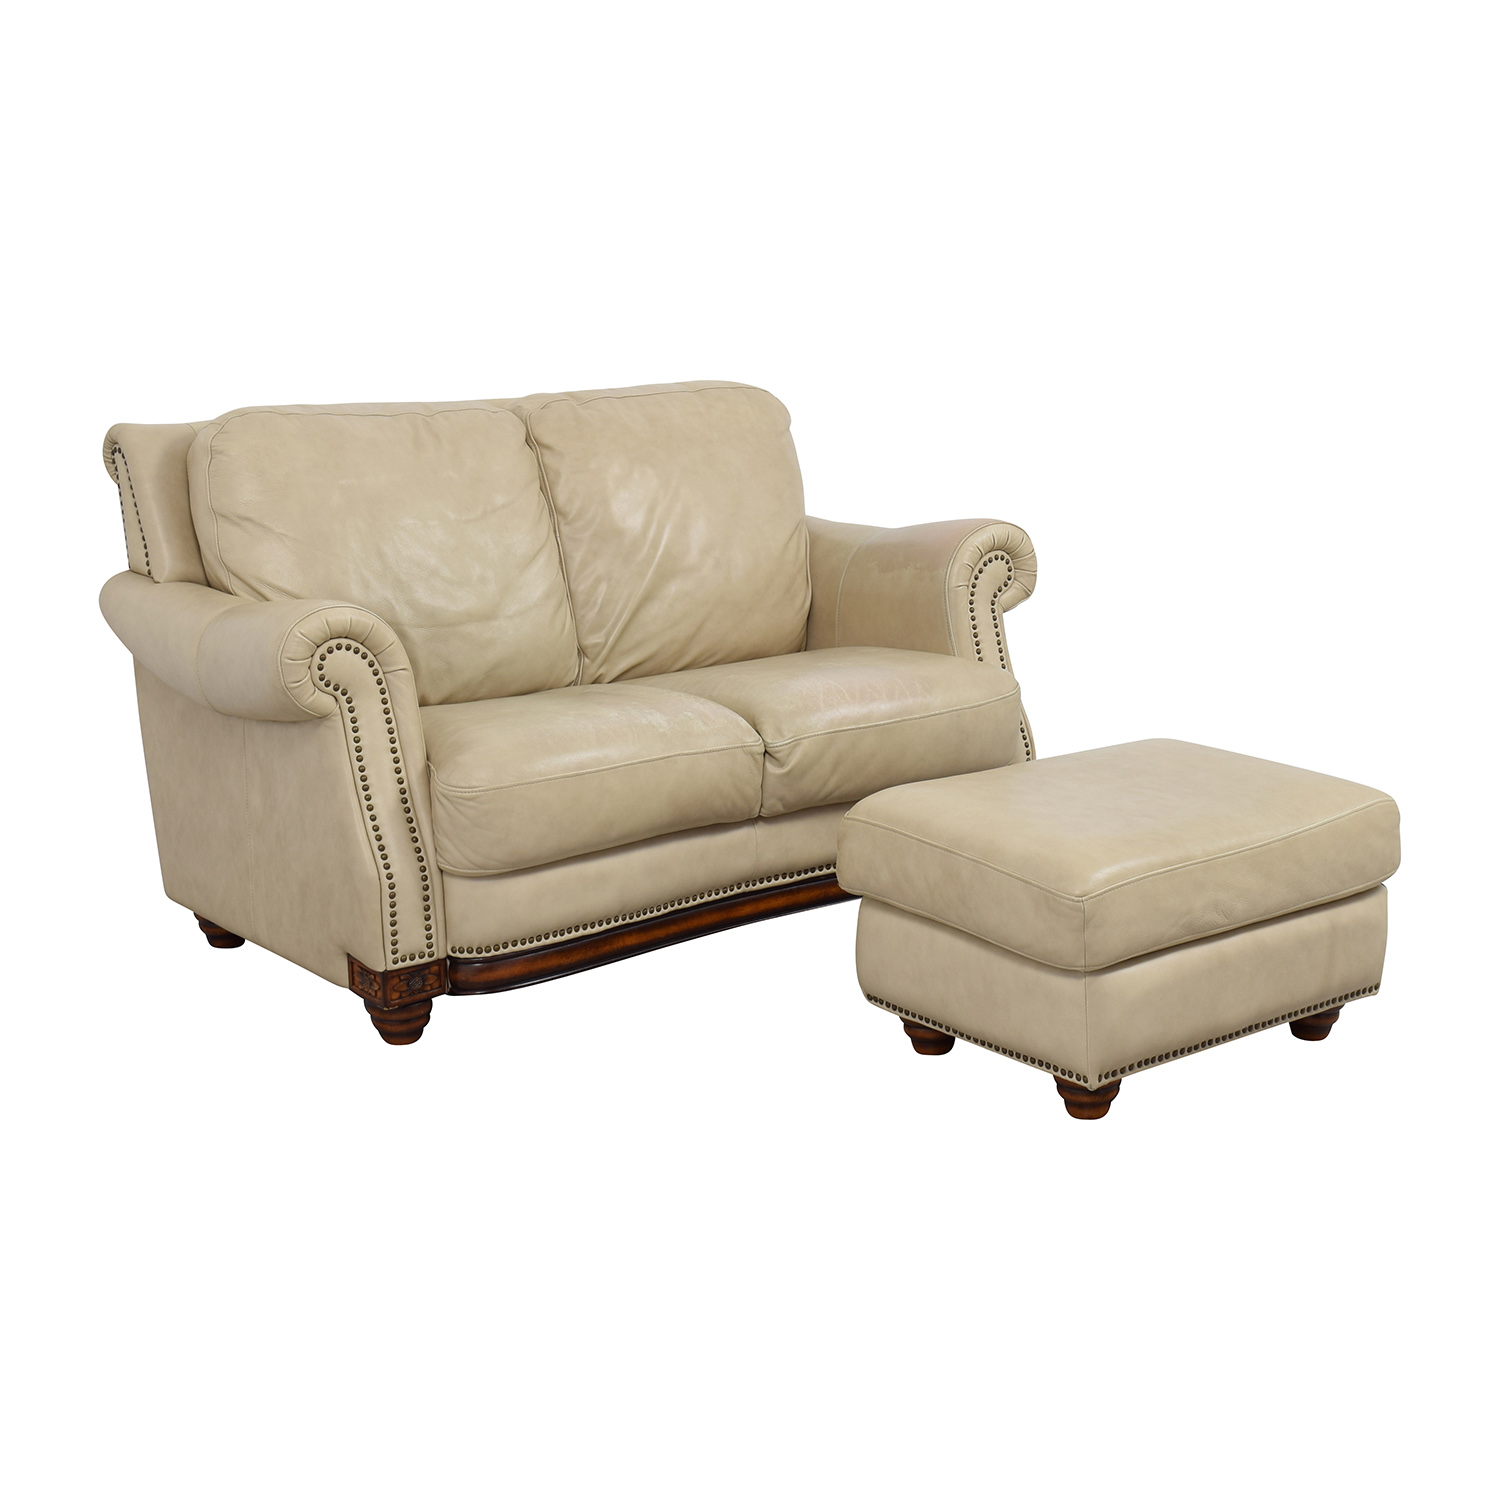 Raymour & Flanigan Raymour & Flanigan Studded Tan Leather Loveseat and Ottoman dimensions